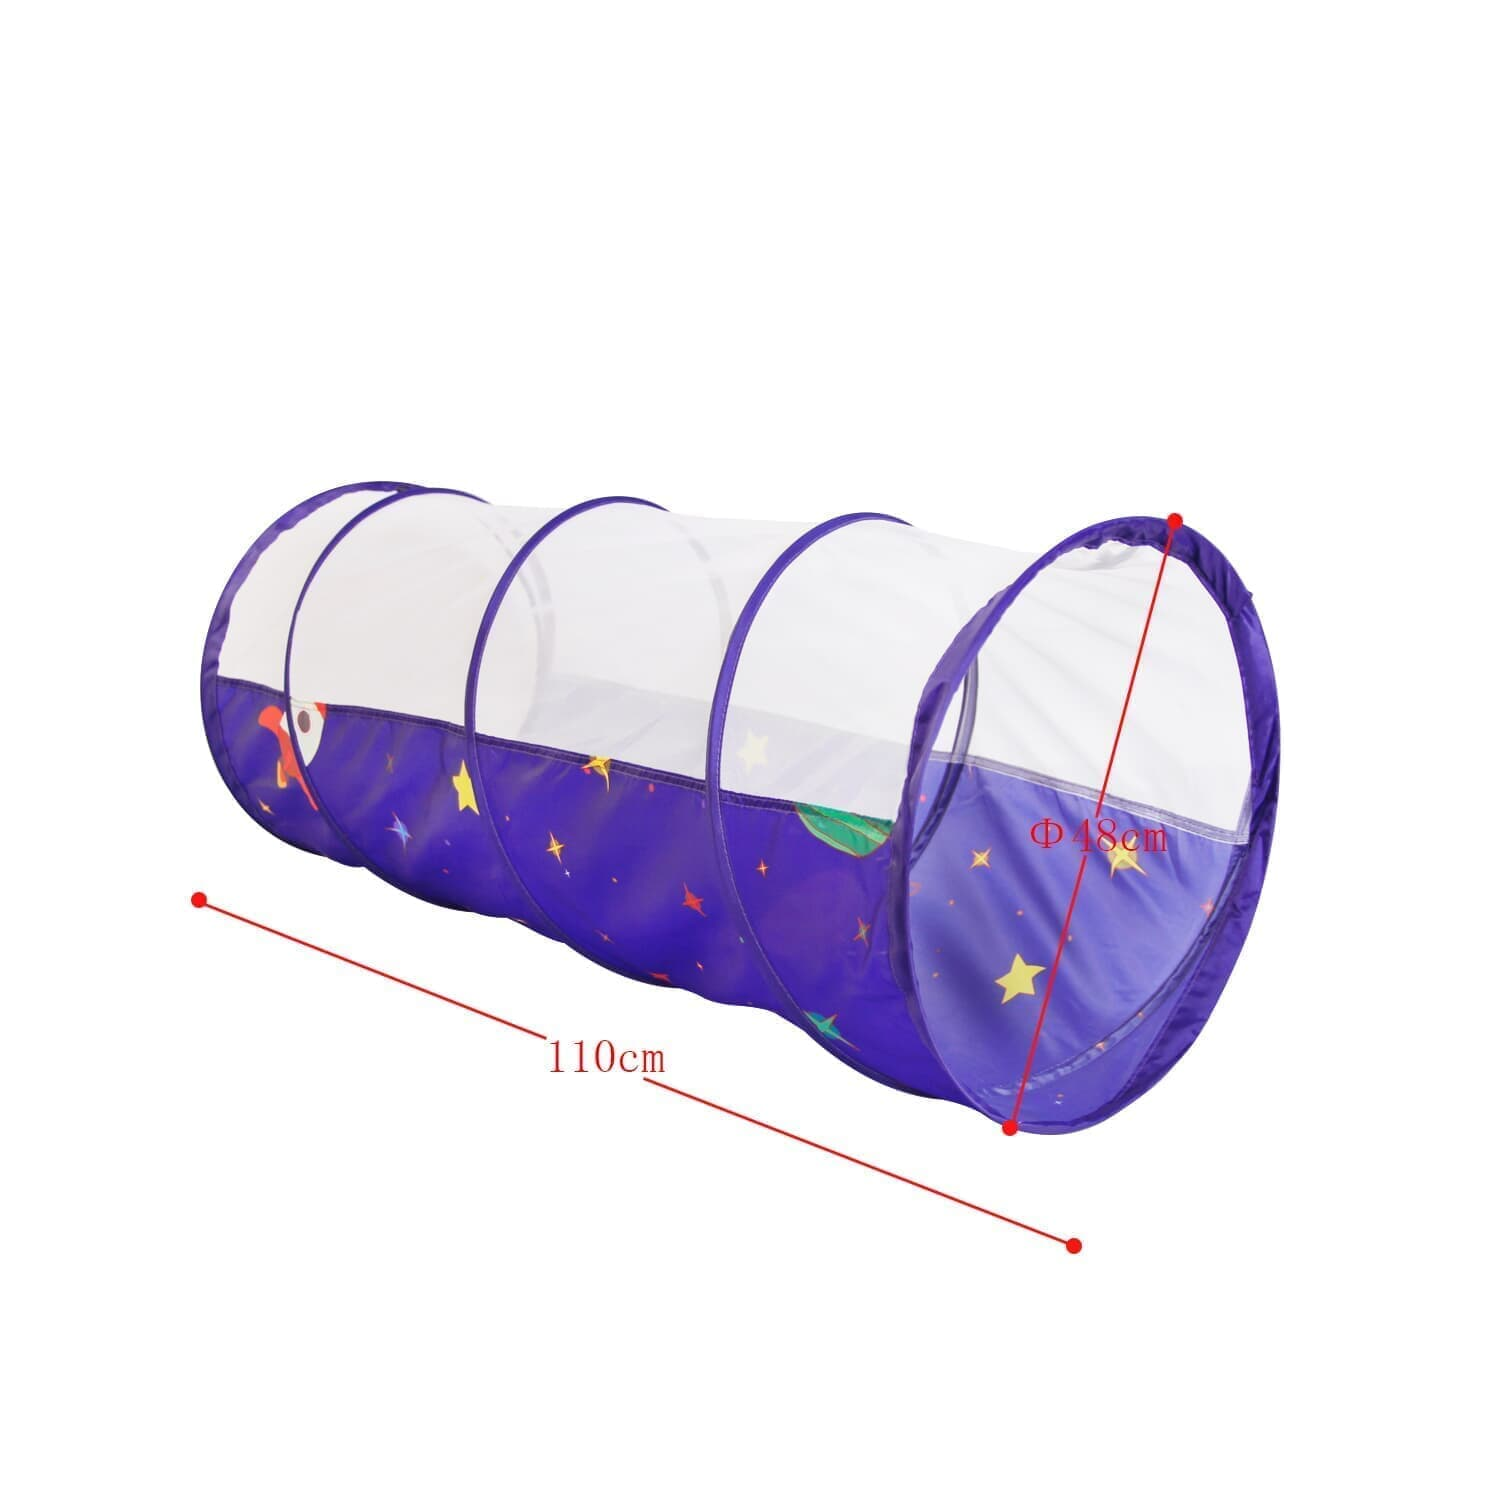 Homfu Kids Indoor And Outdoor Playhouse Princess Prince Castle Children Play Tent And Portable Toy Tent For Boys Girls Homfu Kids Indoor And Outdoor Playhouse Princess Prince Castle Children Play Tent And Portable Toy Tent For Boys Girls Fun PlaysChildren Play Tent,kids play tent,outdoor indooor playhouse,3 in 1 pop up kids play tent